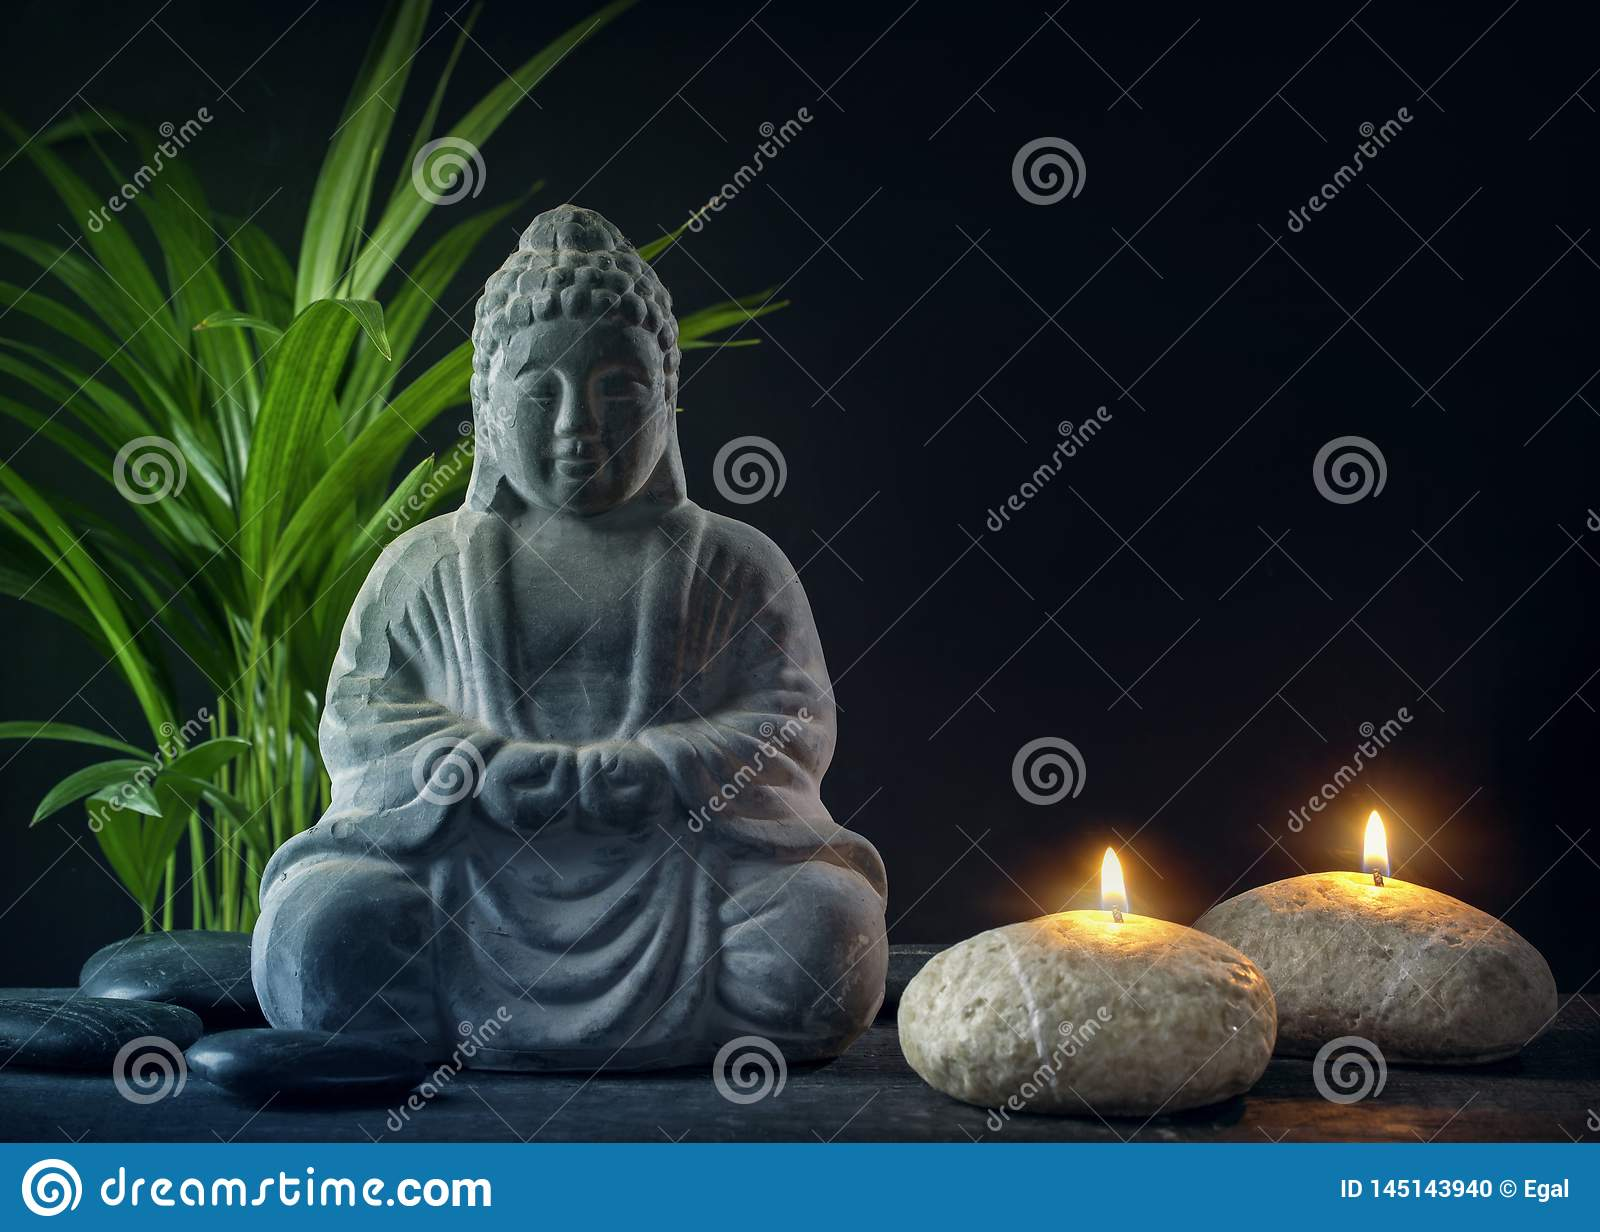 Buddha statue ,towels and candles